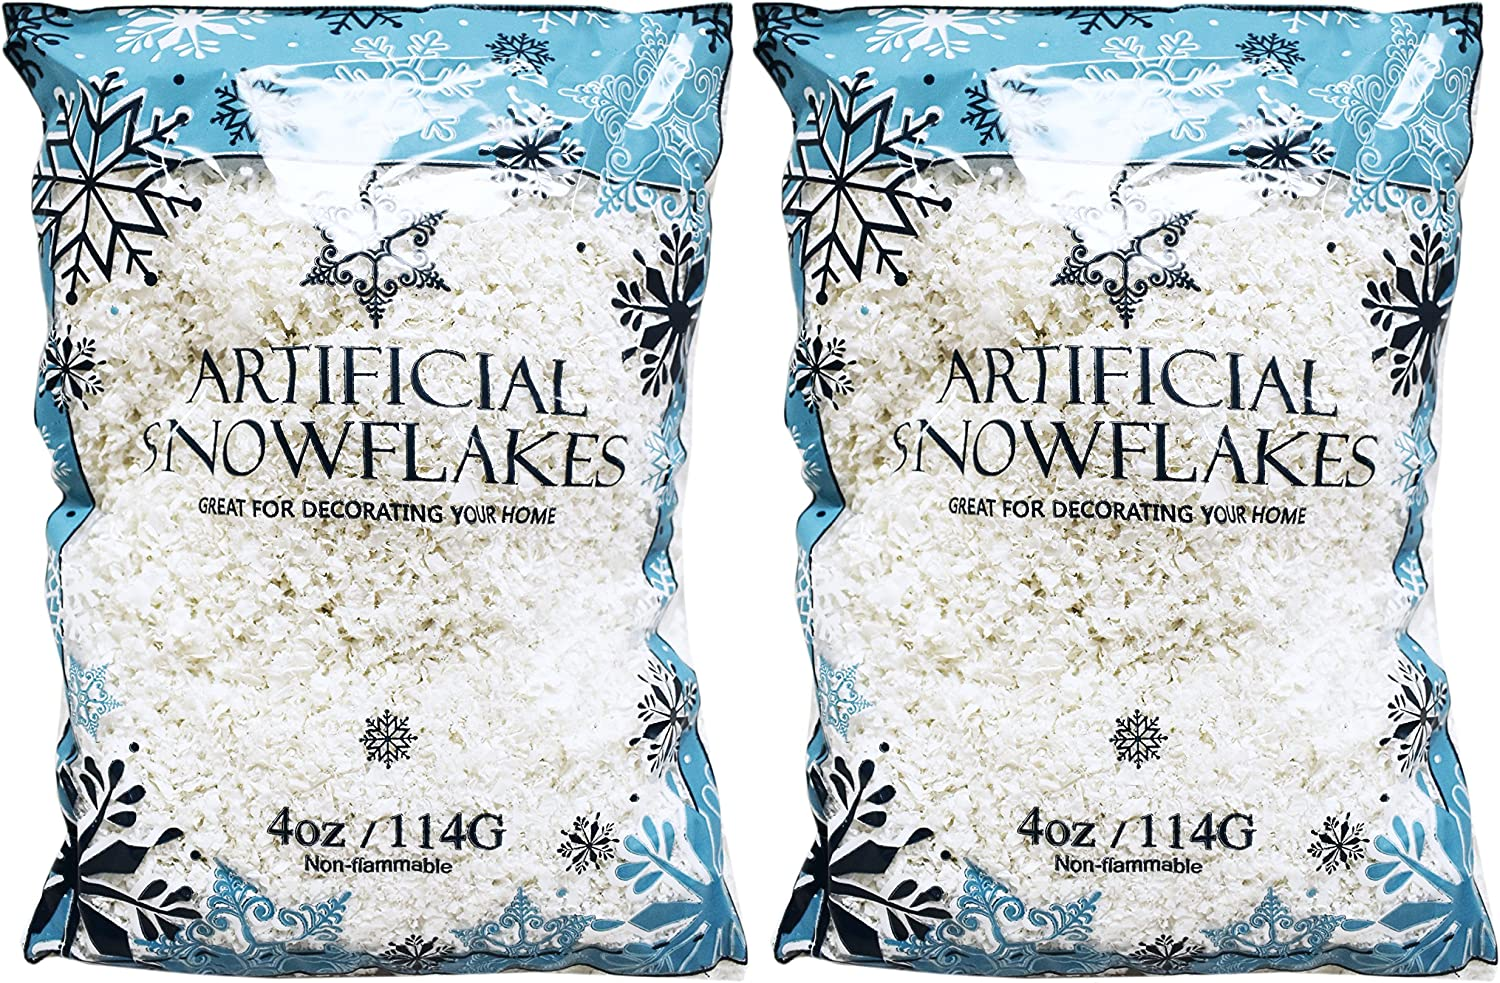 Black Duck Brand Set of 2 Artificial Snow 4 Oz Bags! - Festive Faux Snow for Crafts, Christmas, and Decor! - Great for Setting up Winter Displays and Adding to Decorations!